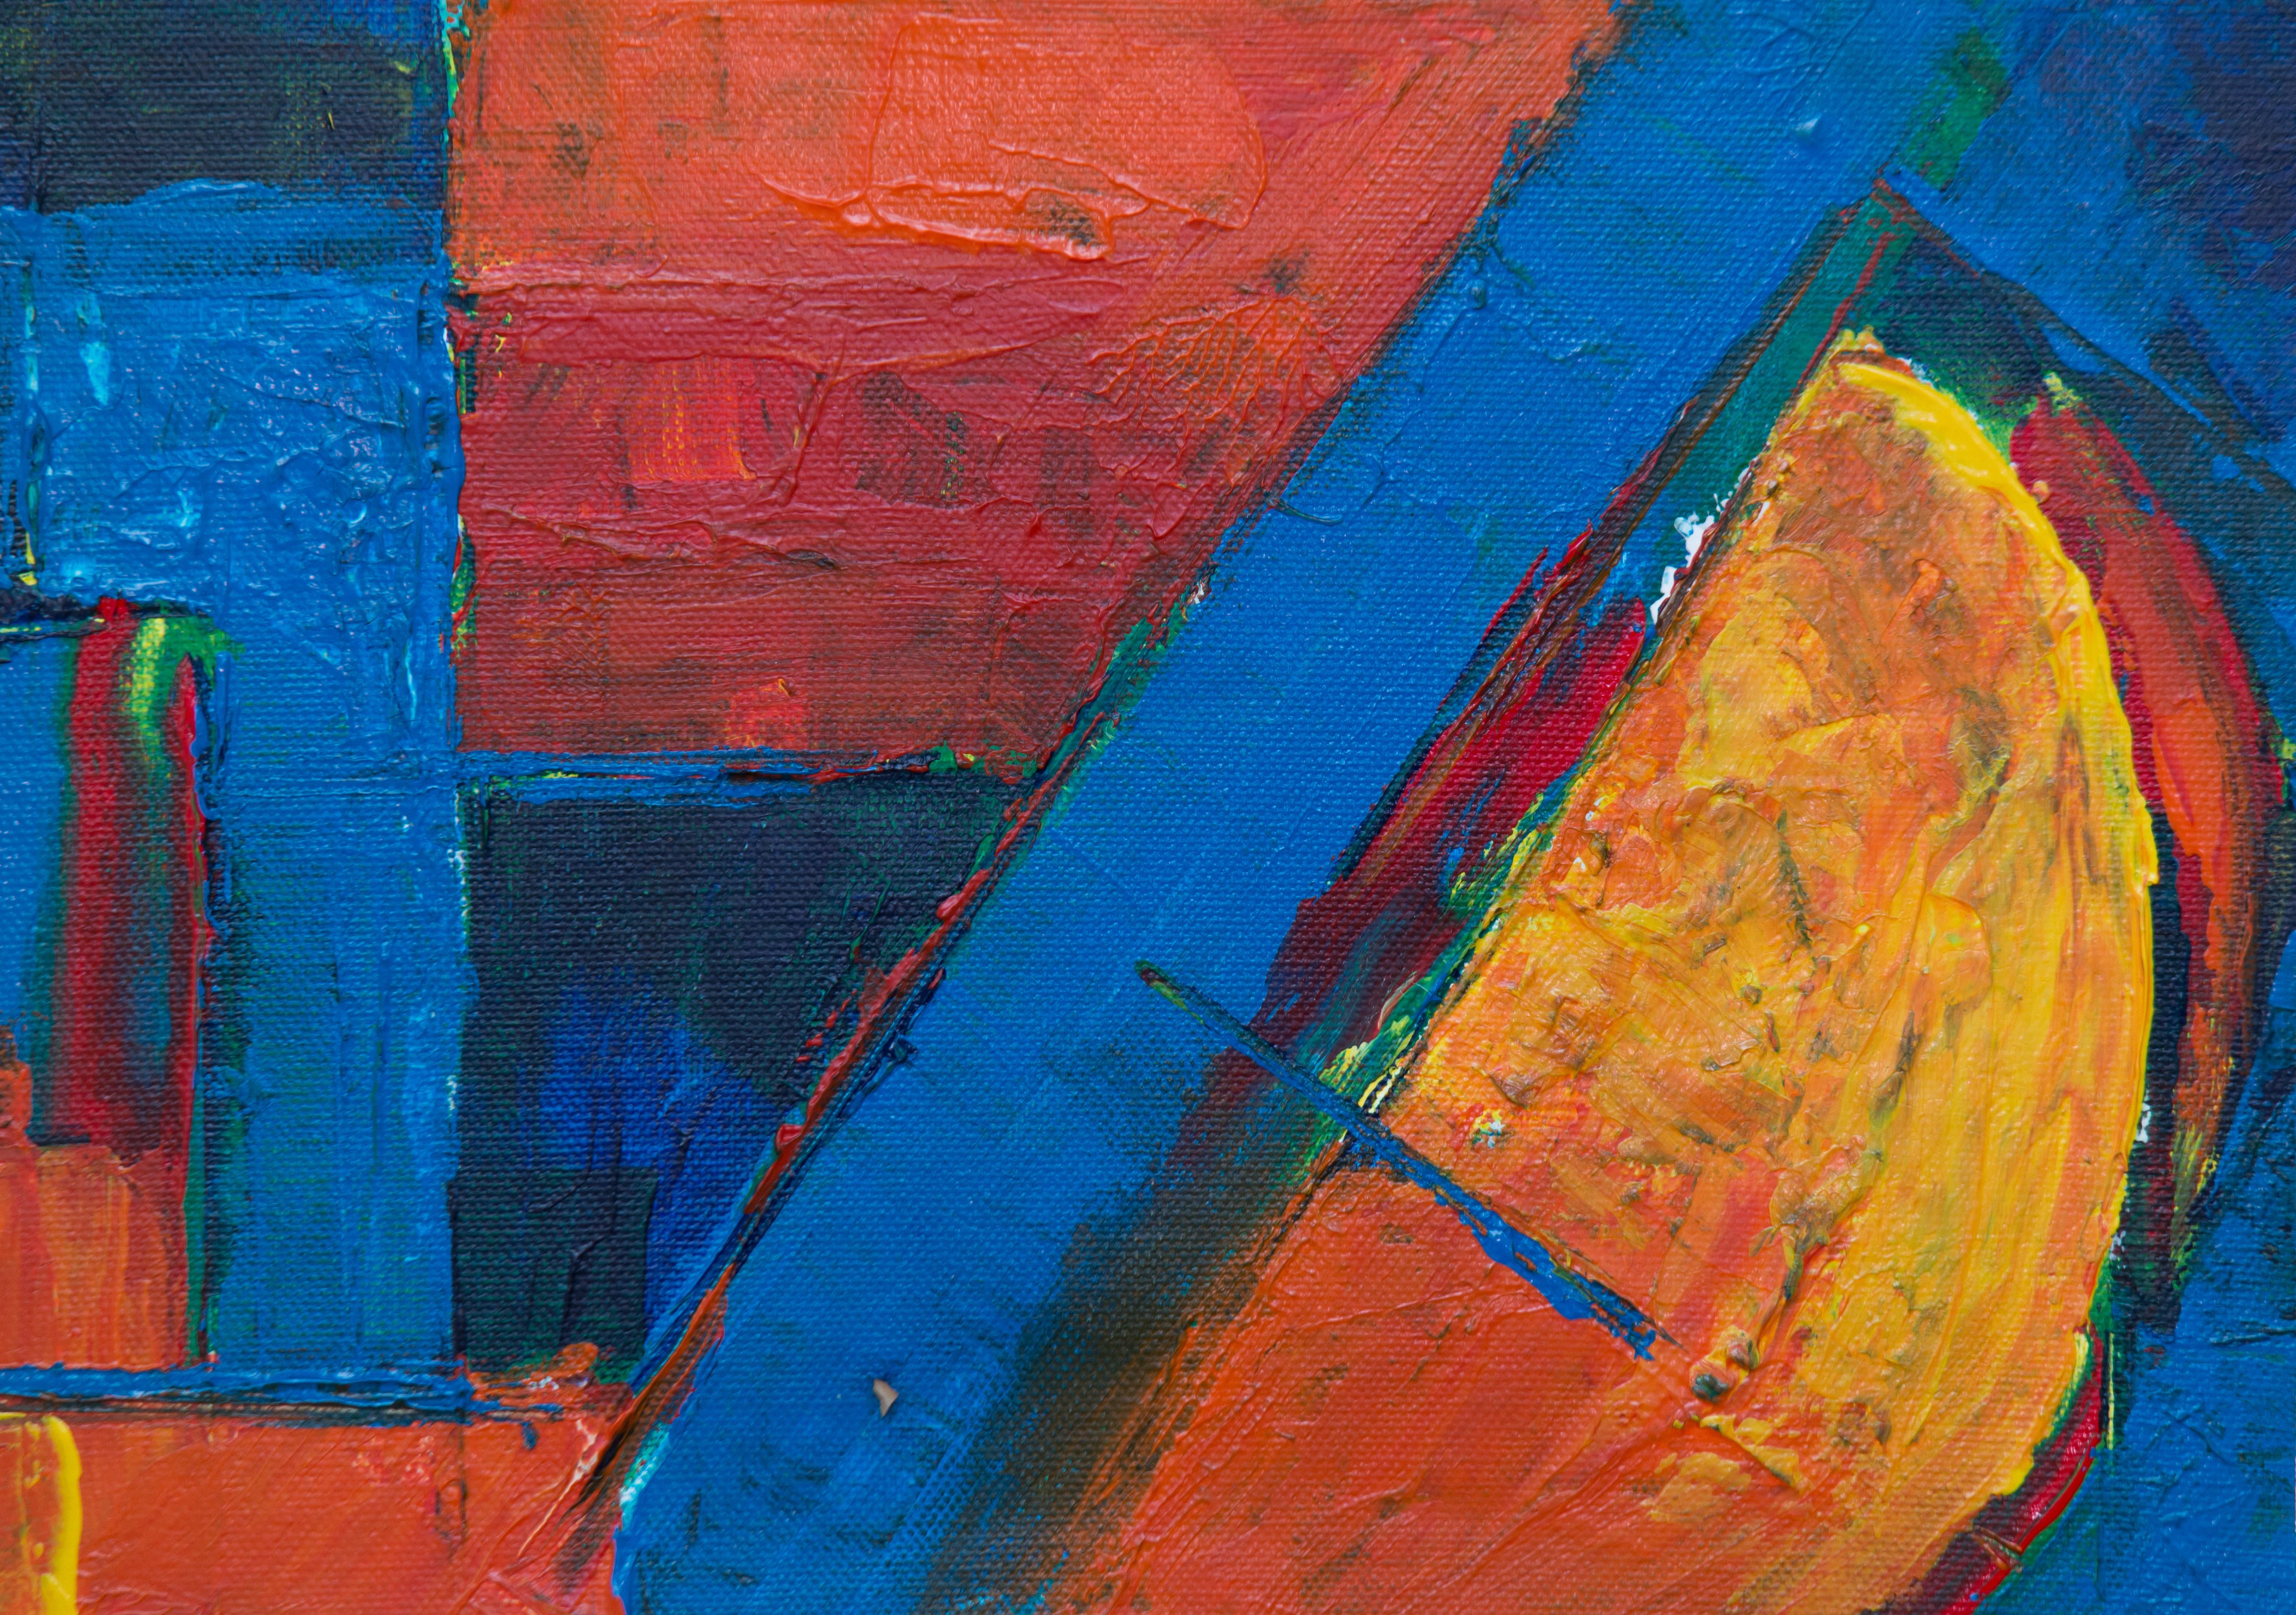 Multicolored Abstract Painting Free Stock